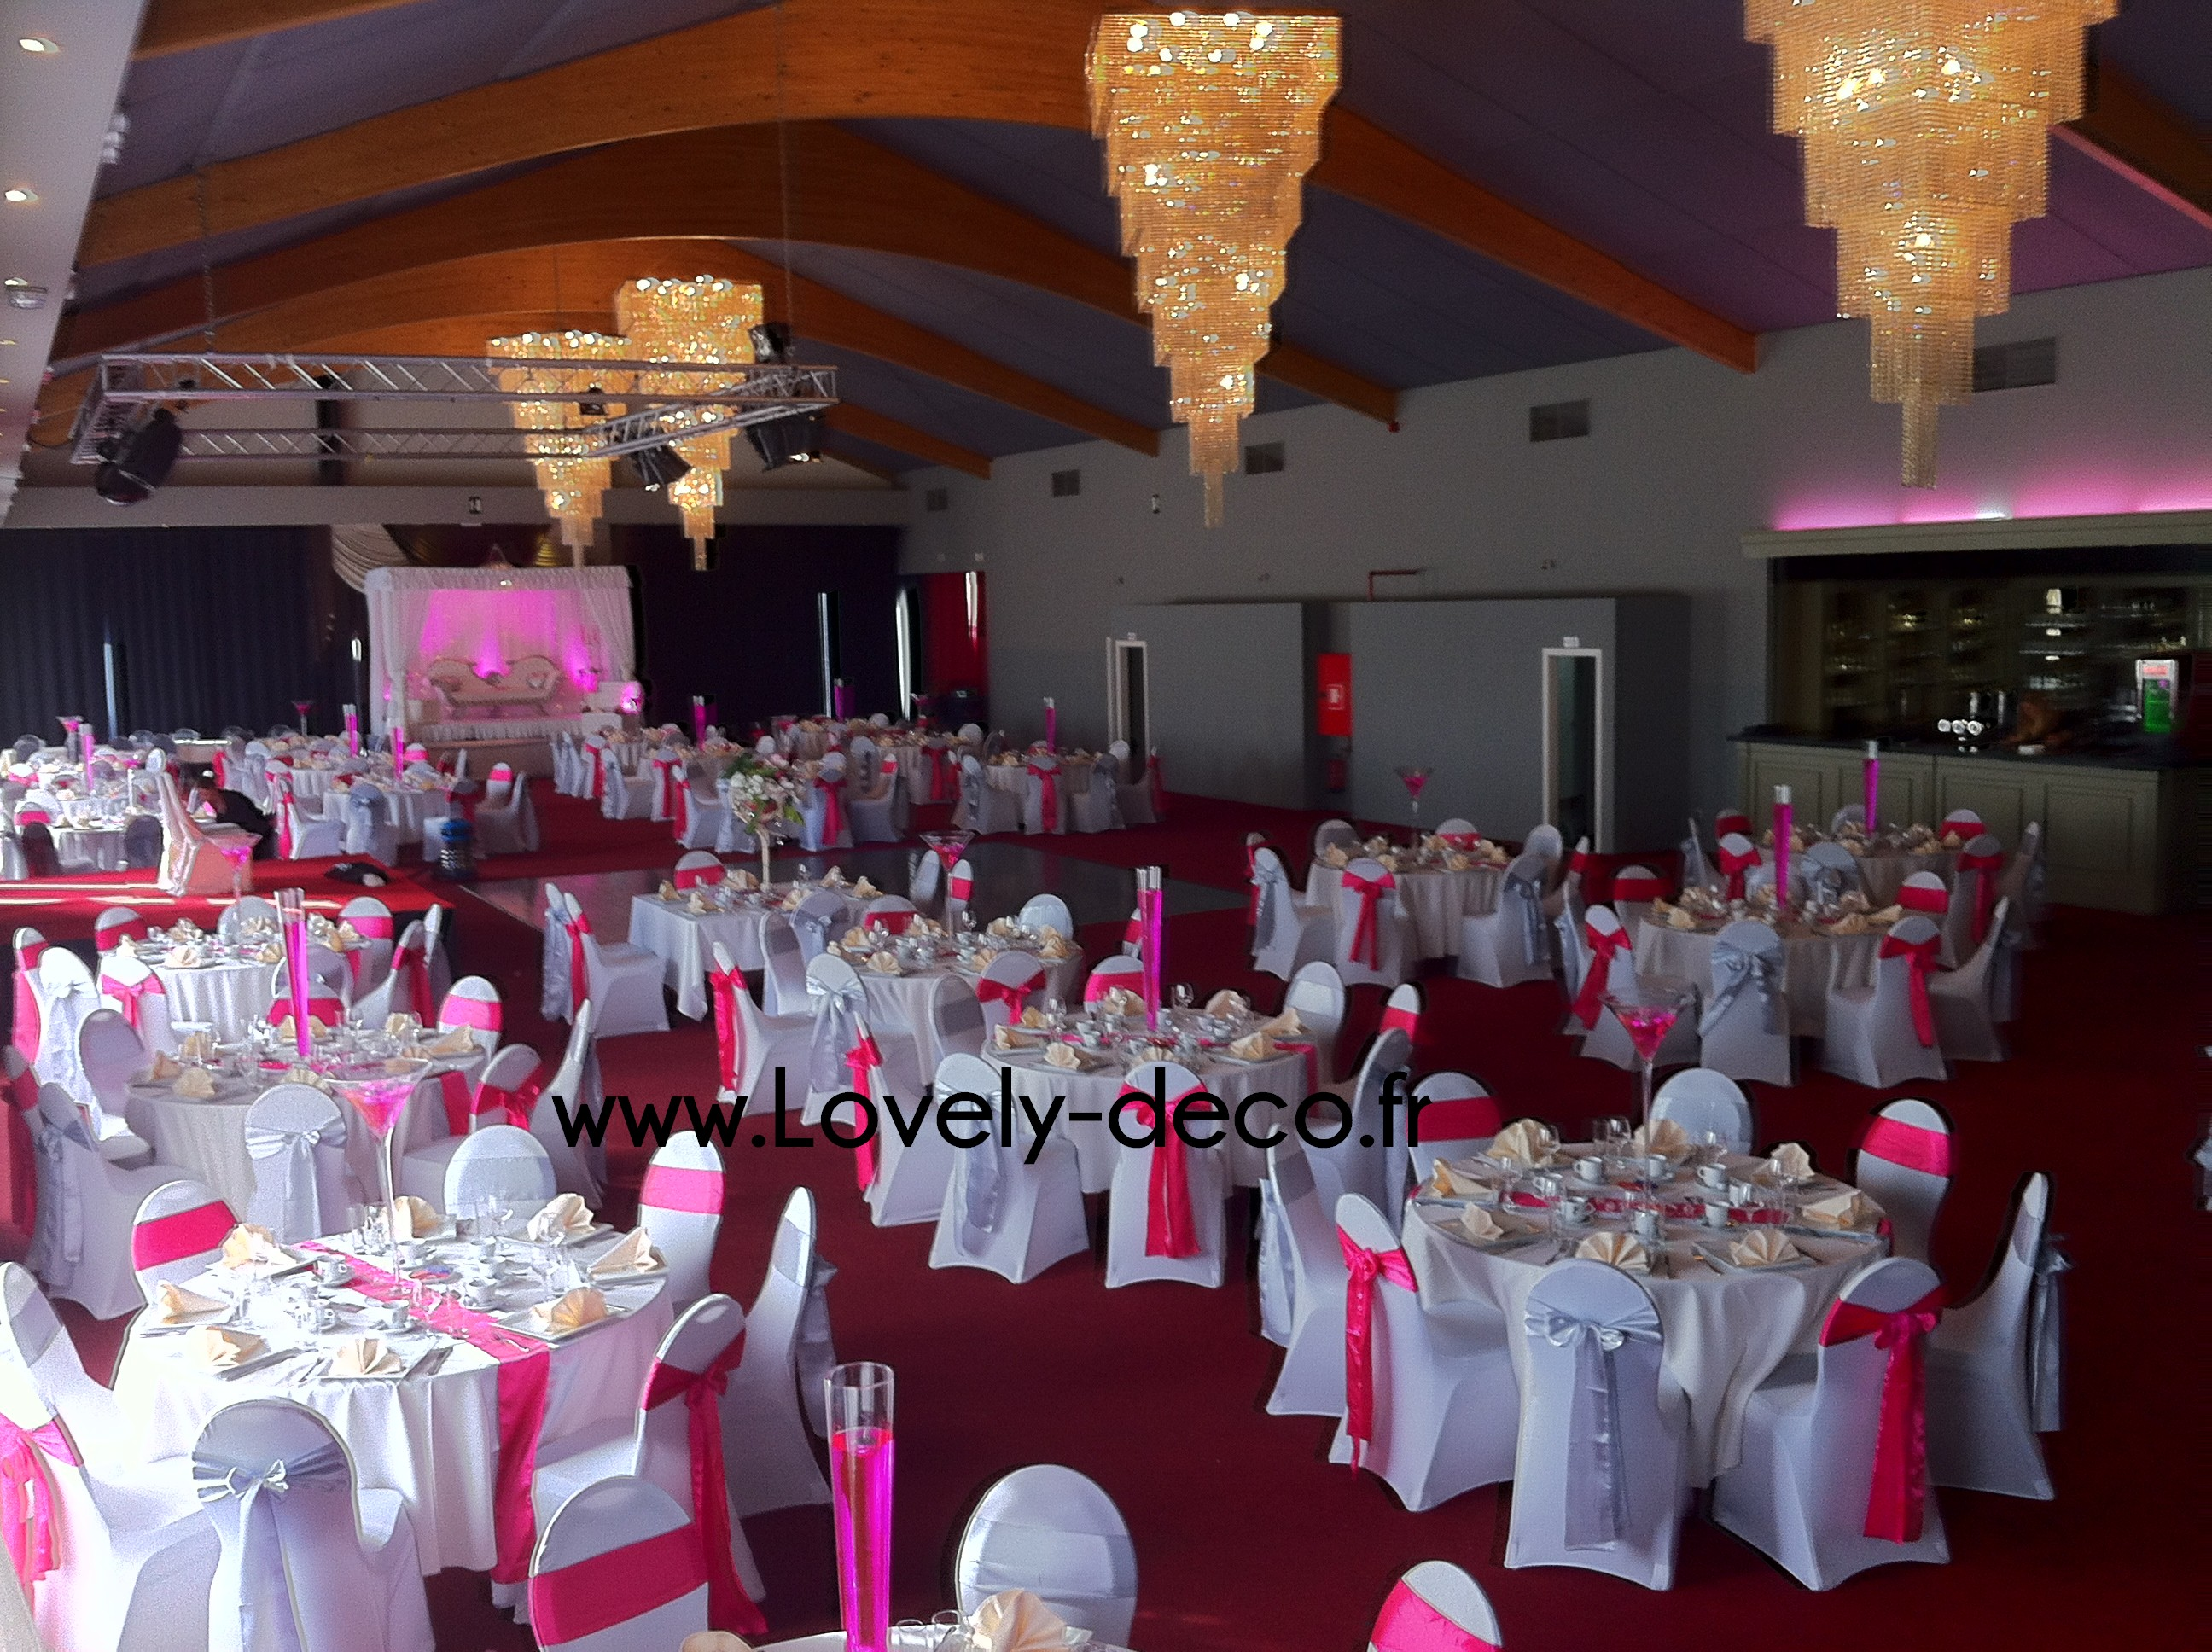 Lovelydeco createur d 39 evenement - Decoration indienne pas cher ...